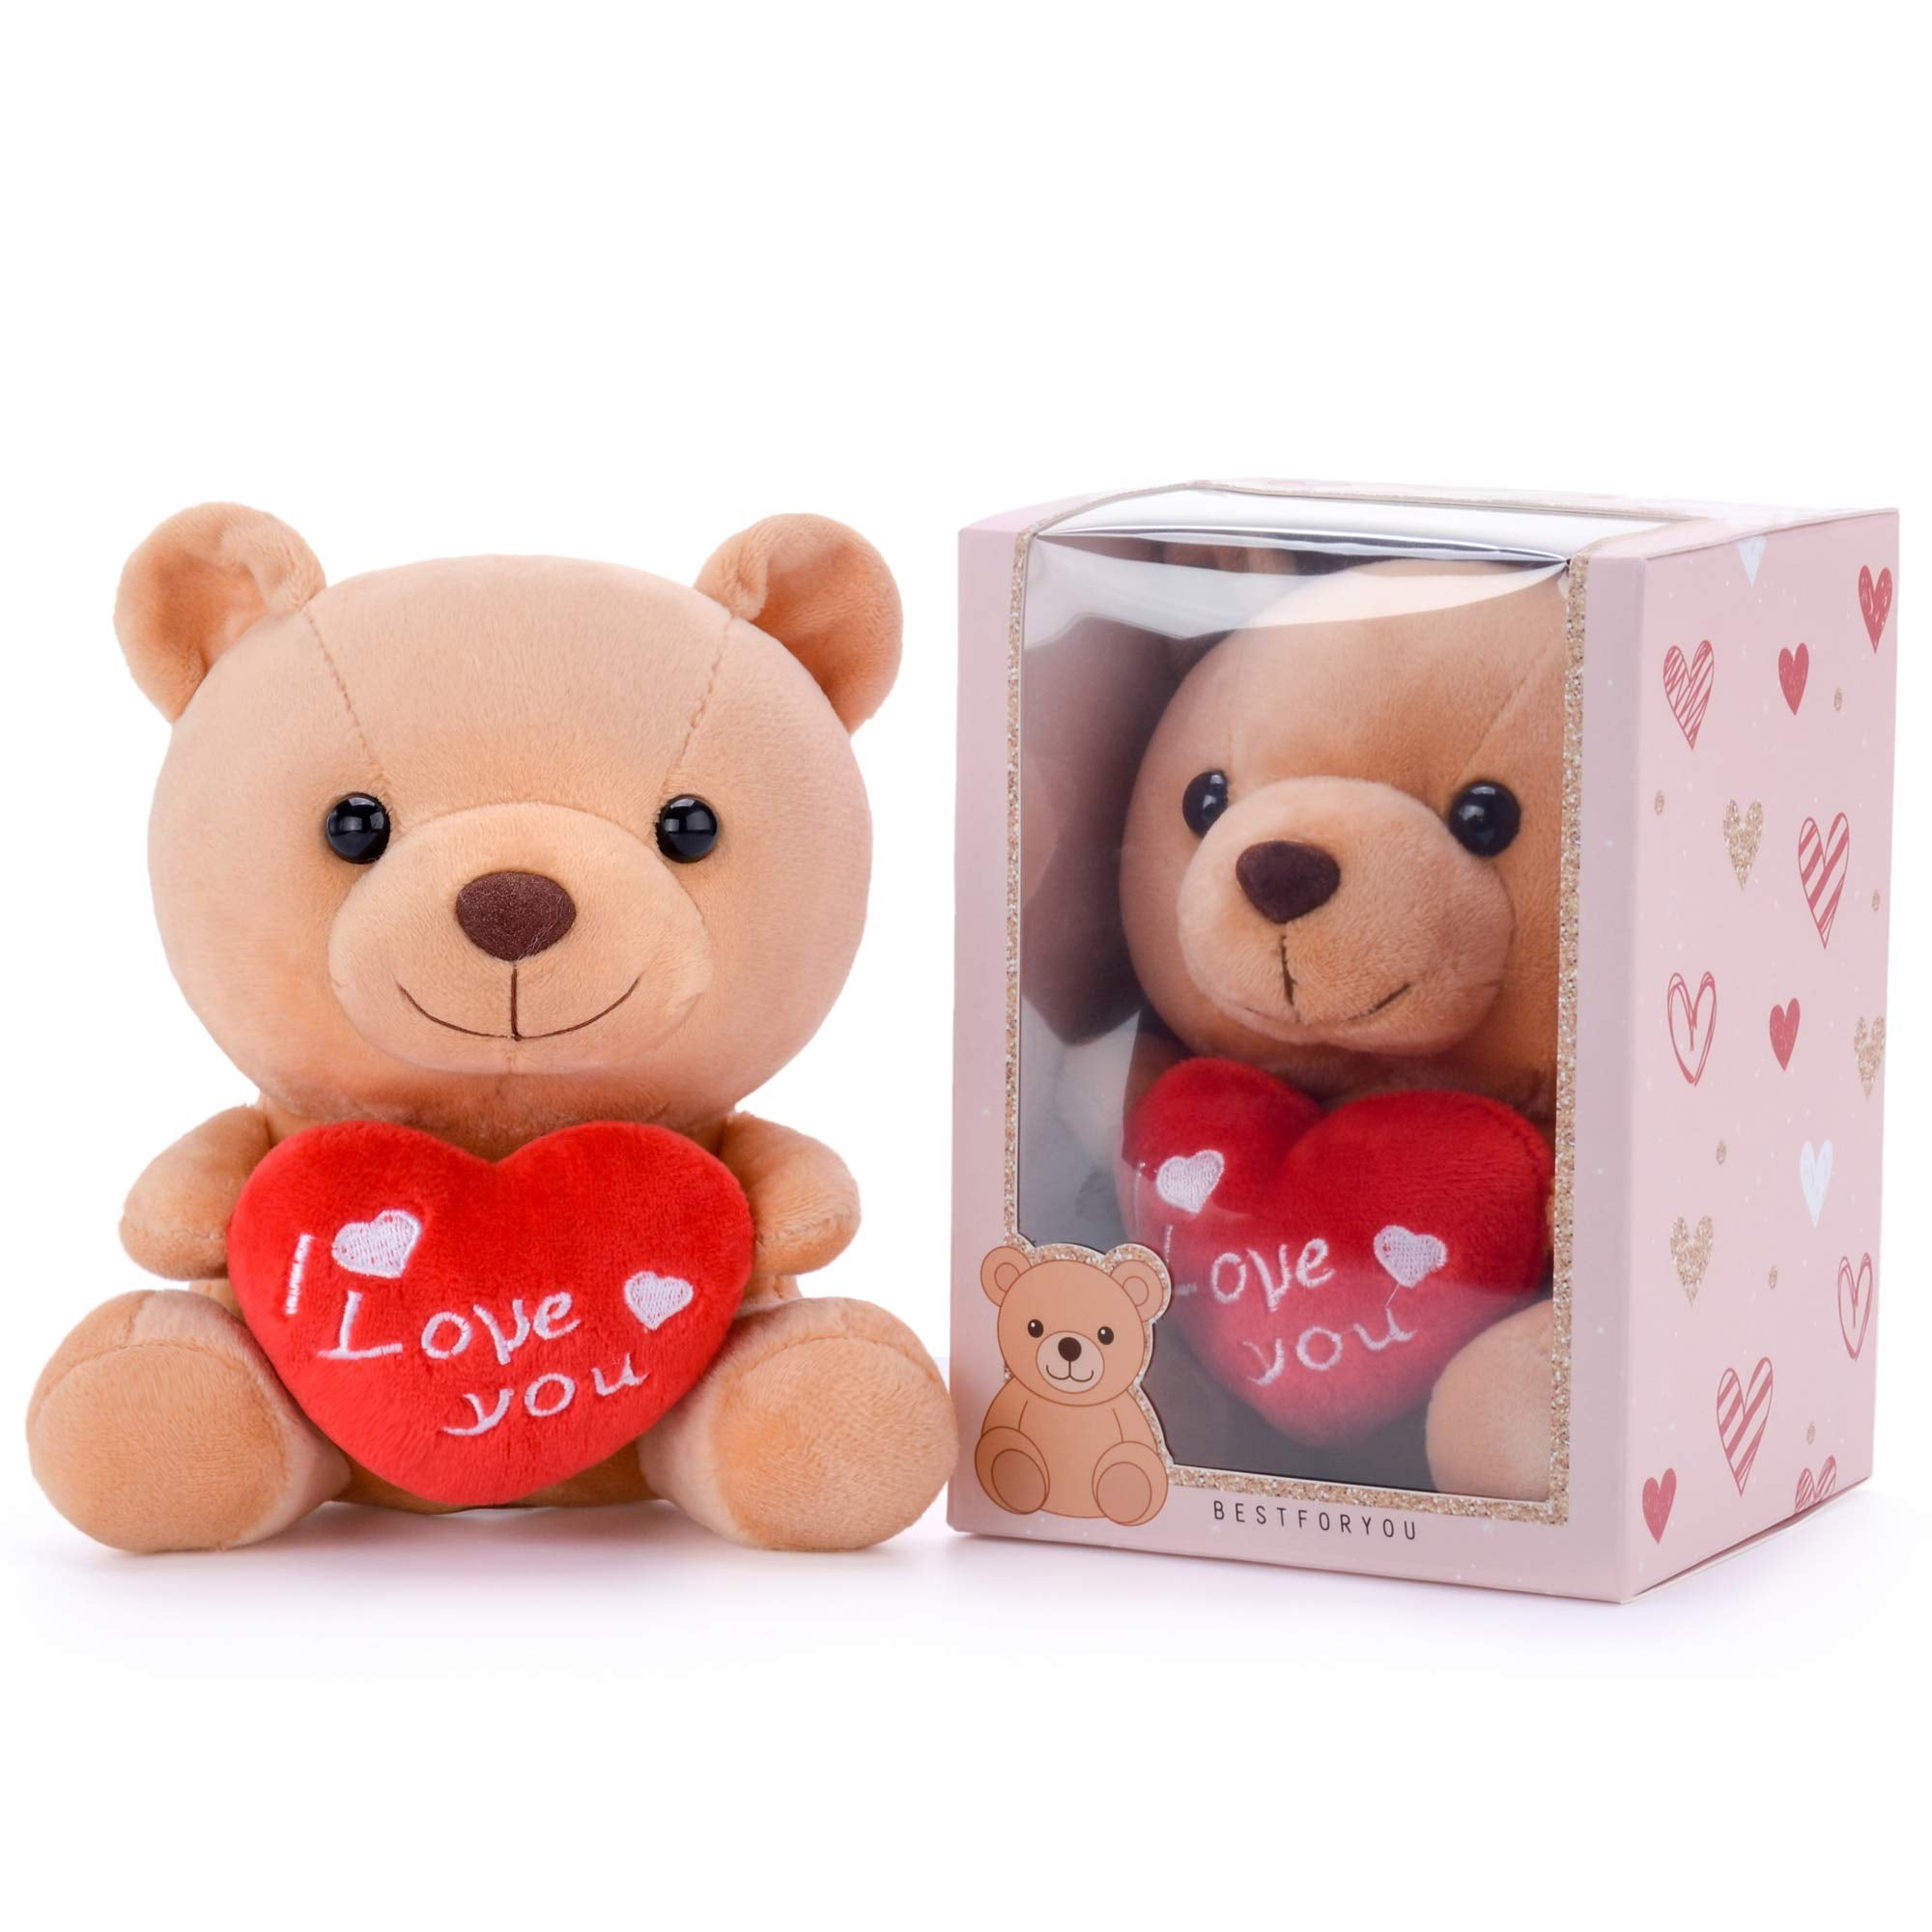 Stuffed Animal Teddy Bear Plush Toy I Love You Gift